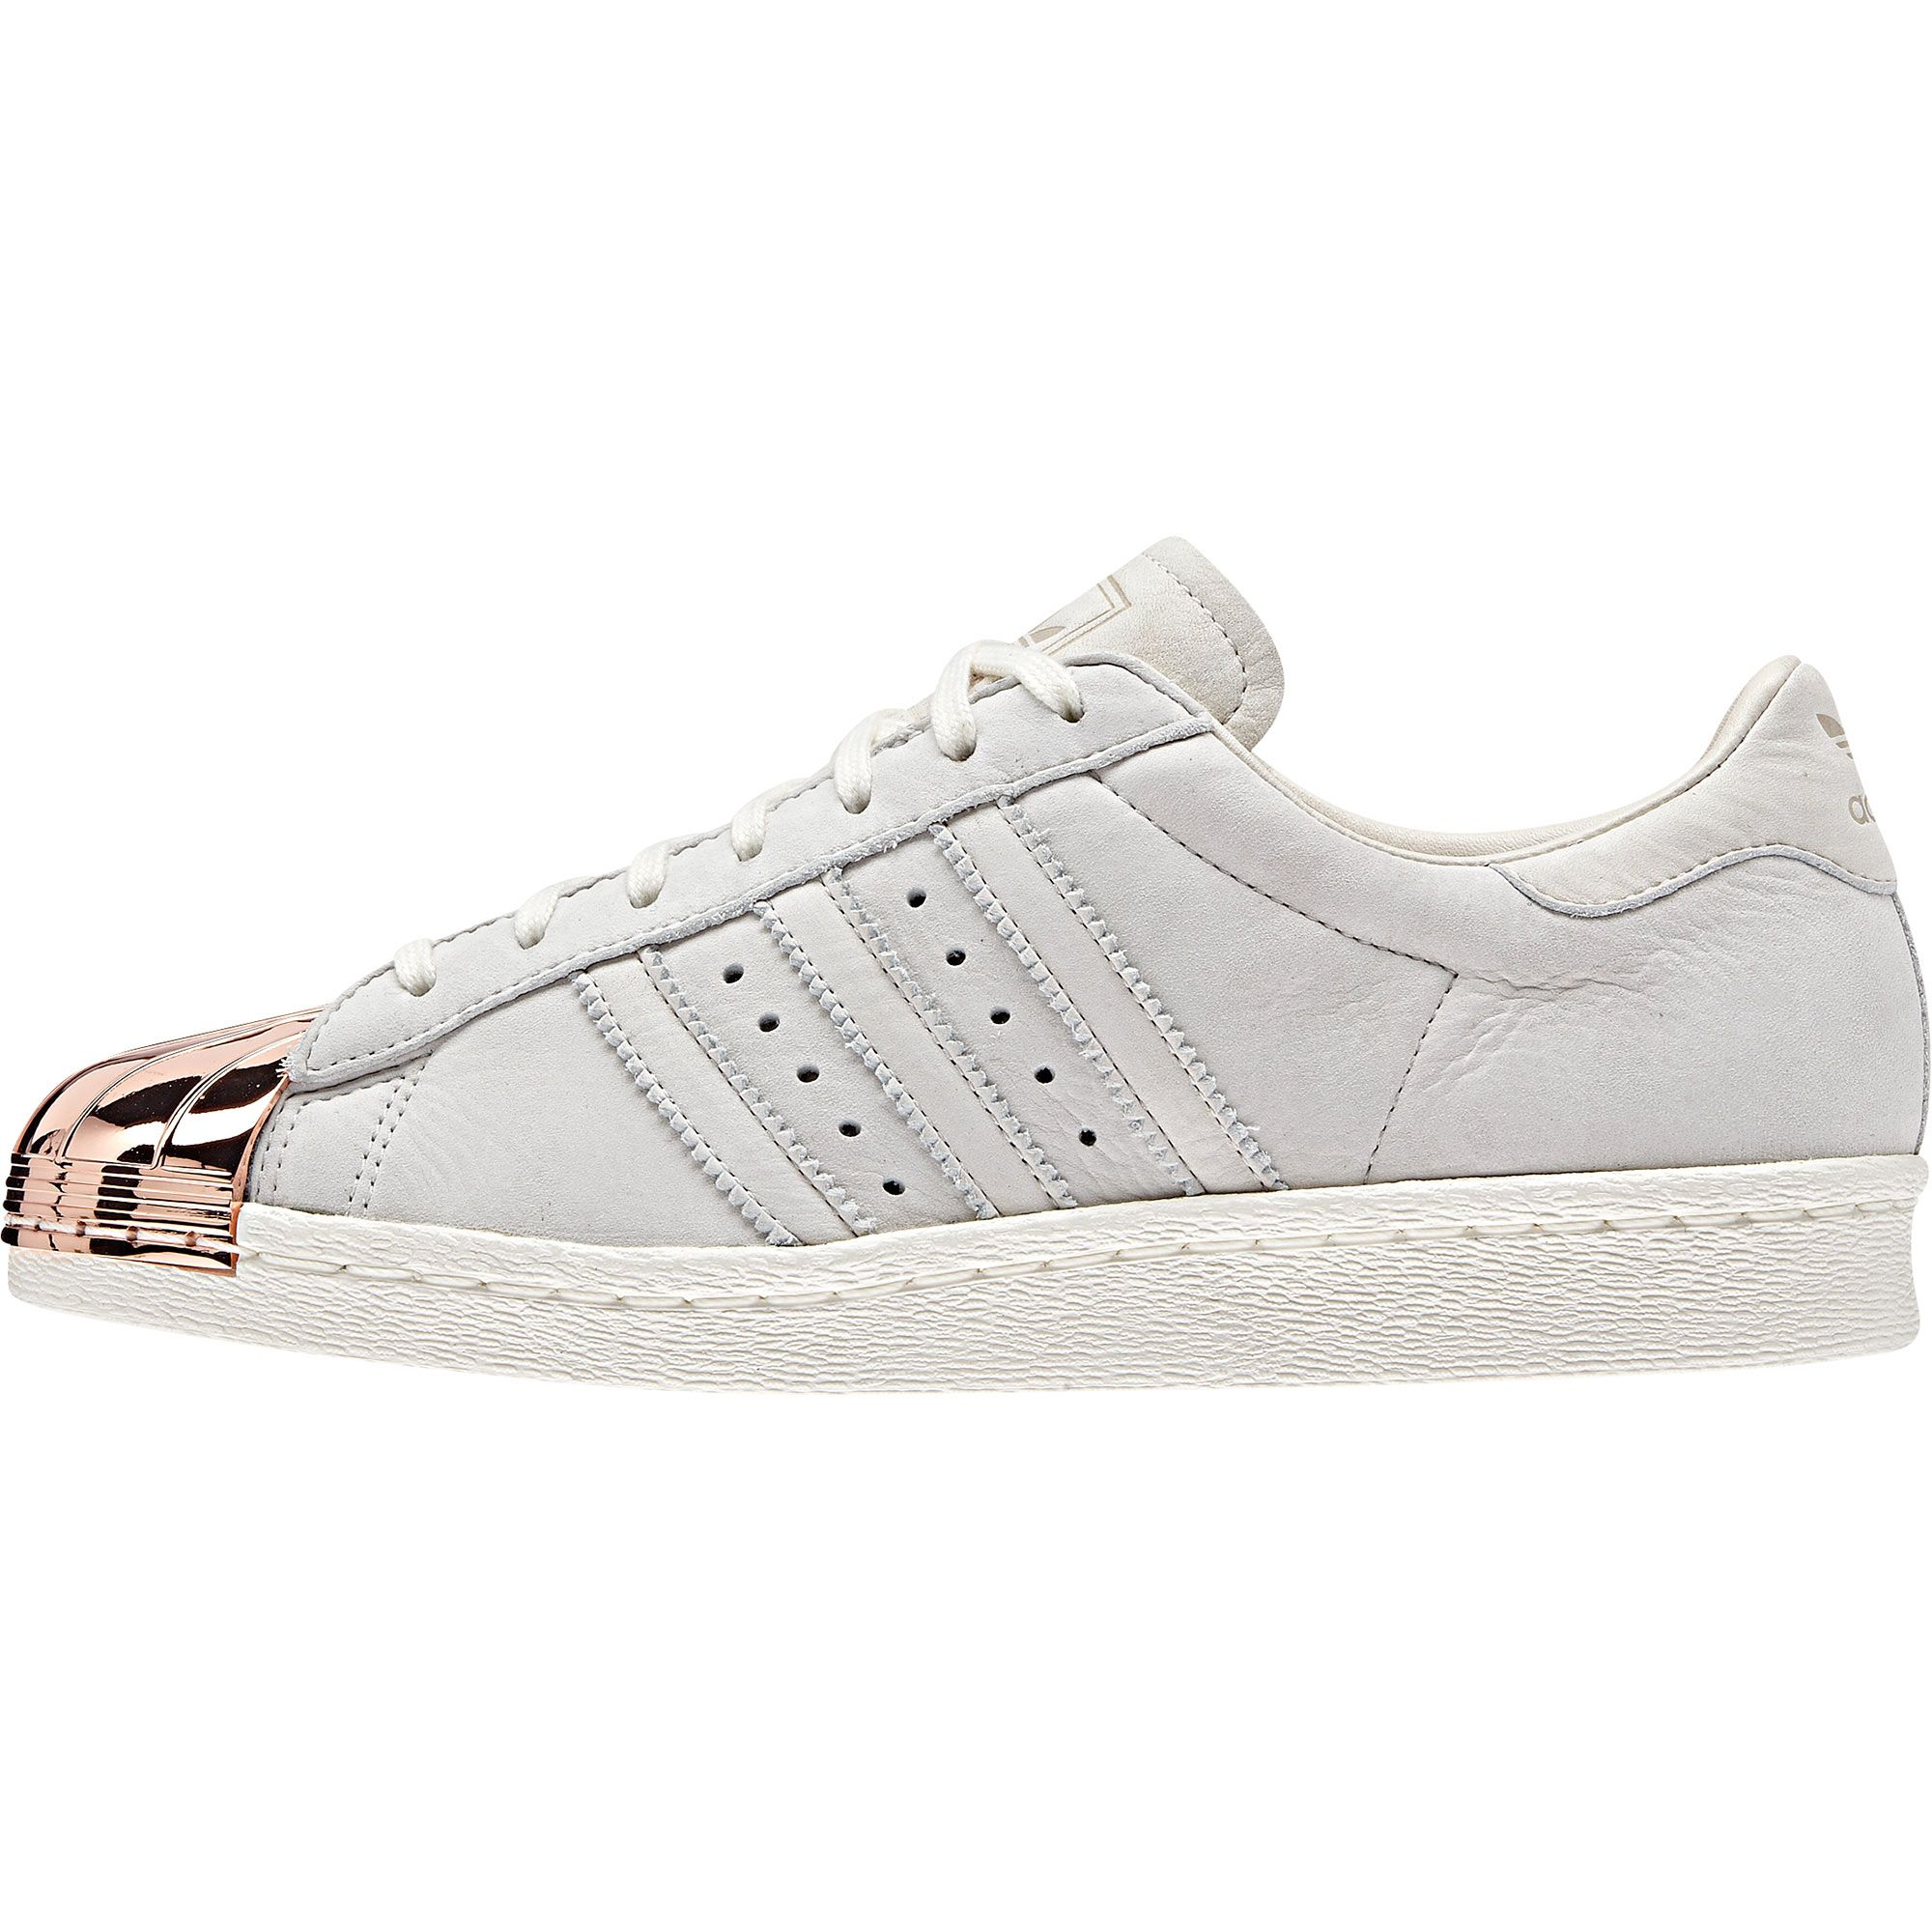 adidas Tenis Superstar 80s Metal | adidas Mexico #adidasoriginals